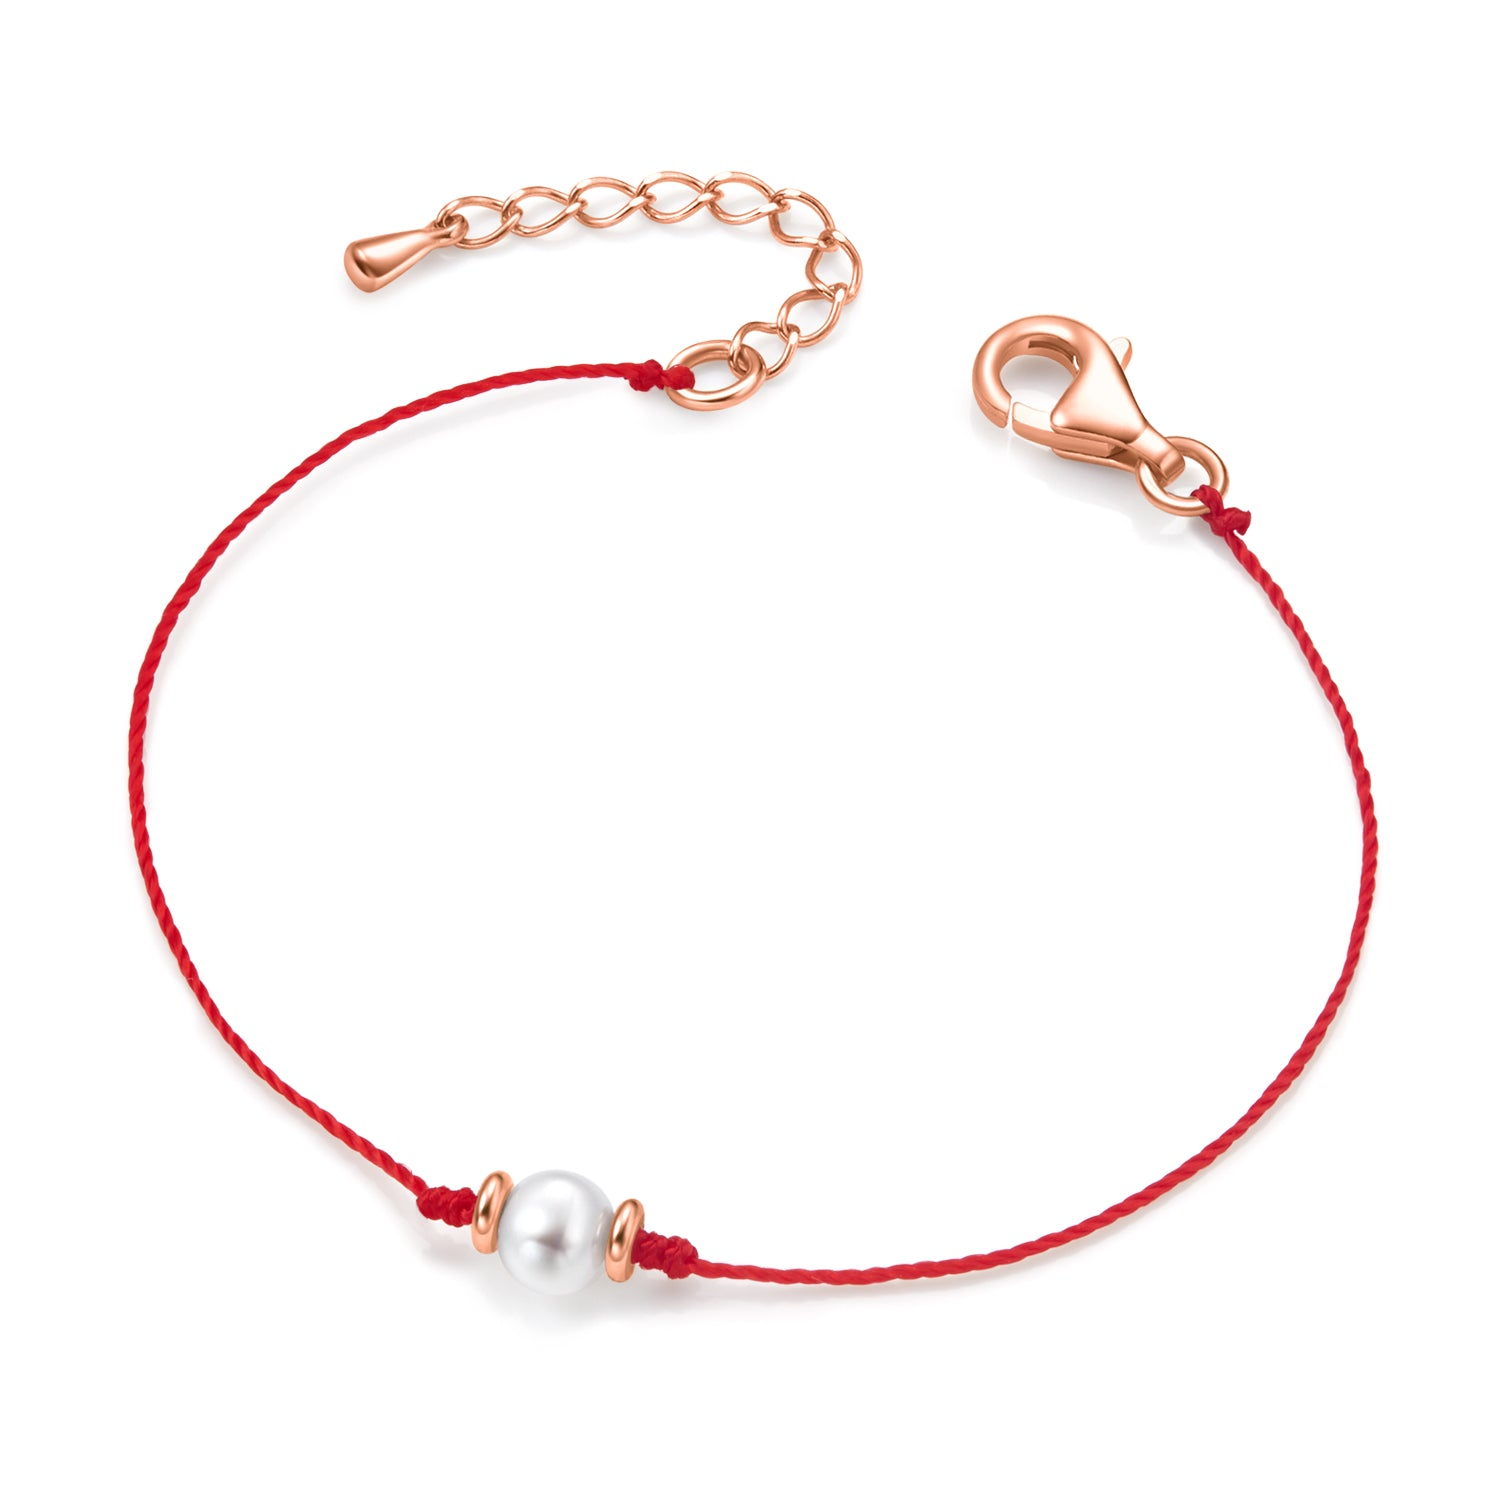 Rainbow Anklet (ferrai red)